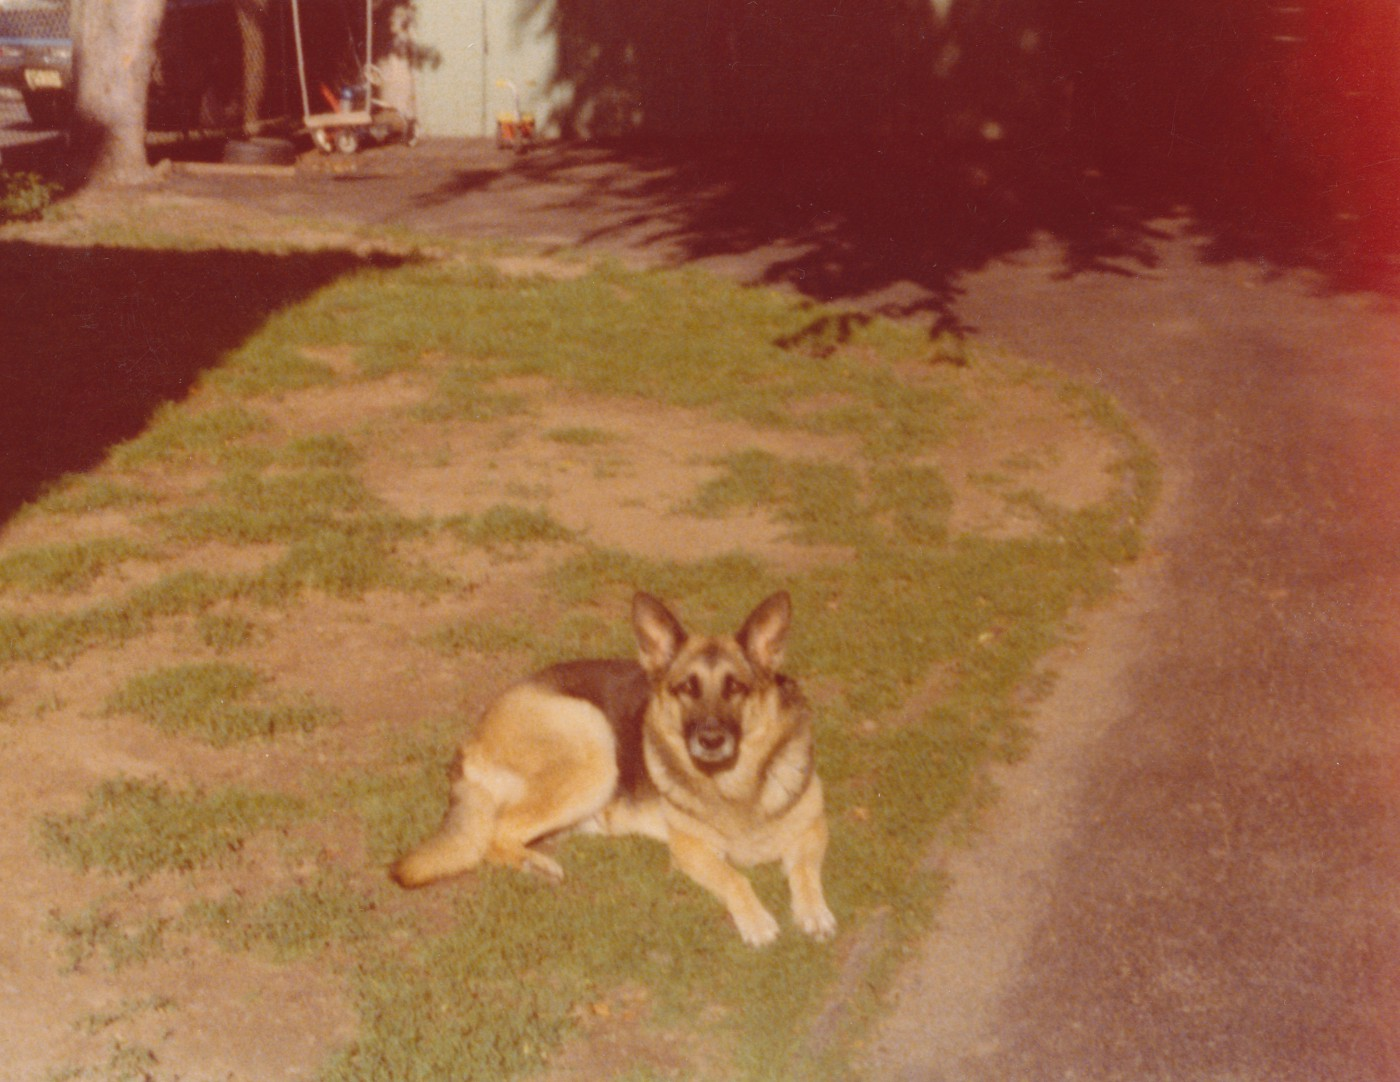 Vintage photograph of a German shepherd dog.